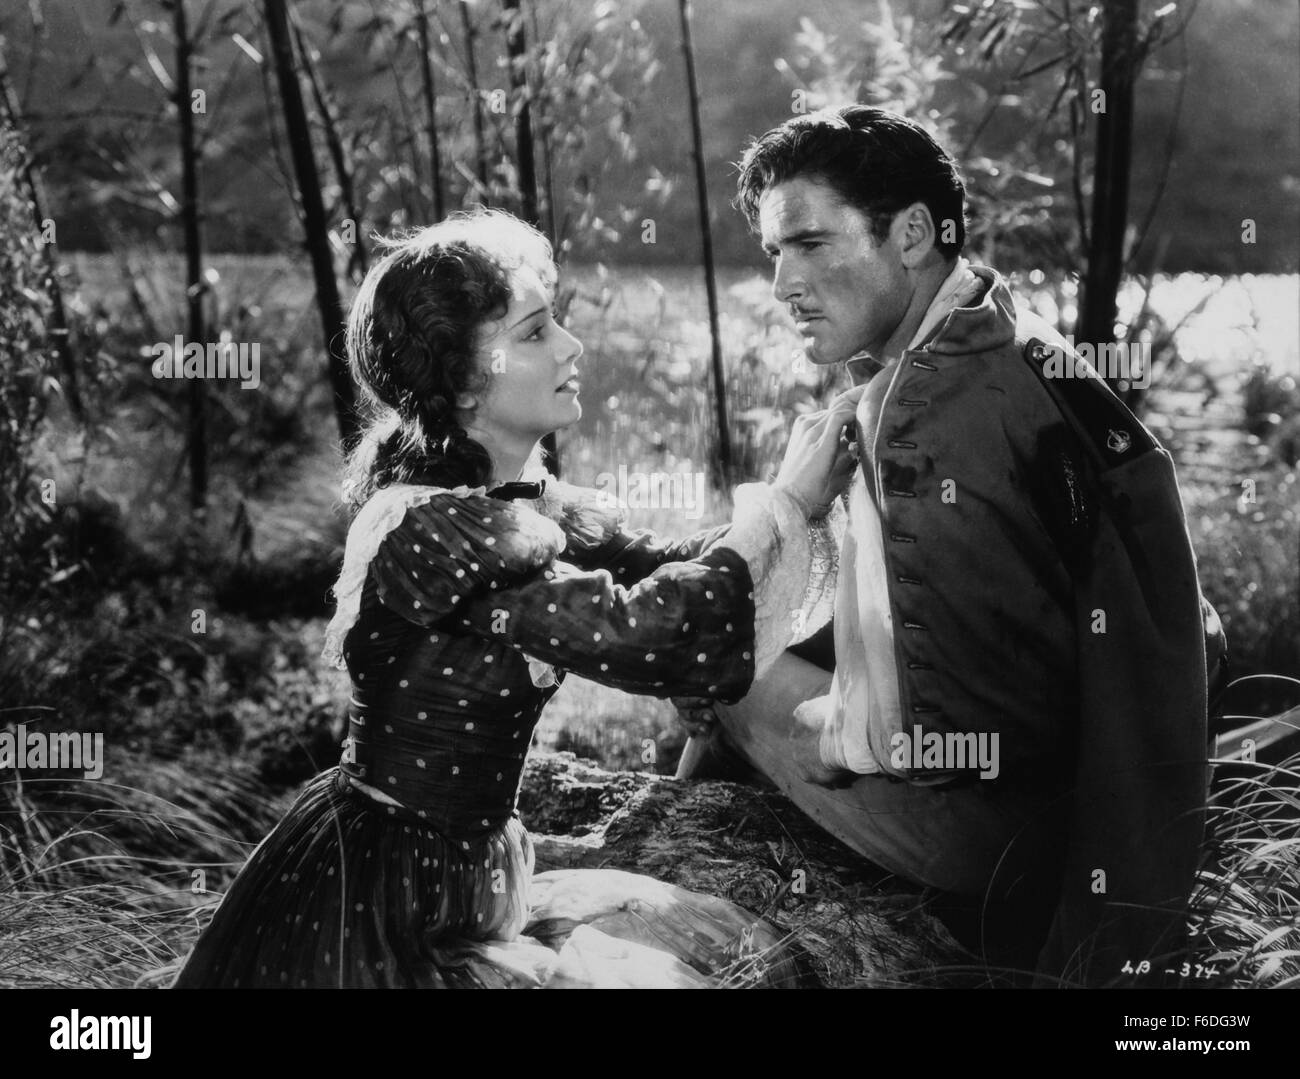 Jan. 1, 1930 - Olivia de Havilland and Errol Flynn, On-Set of the Film, The Charge of the Light Brigade, 1936 (Credit - Stock Image